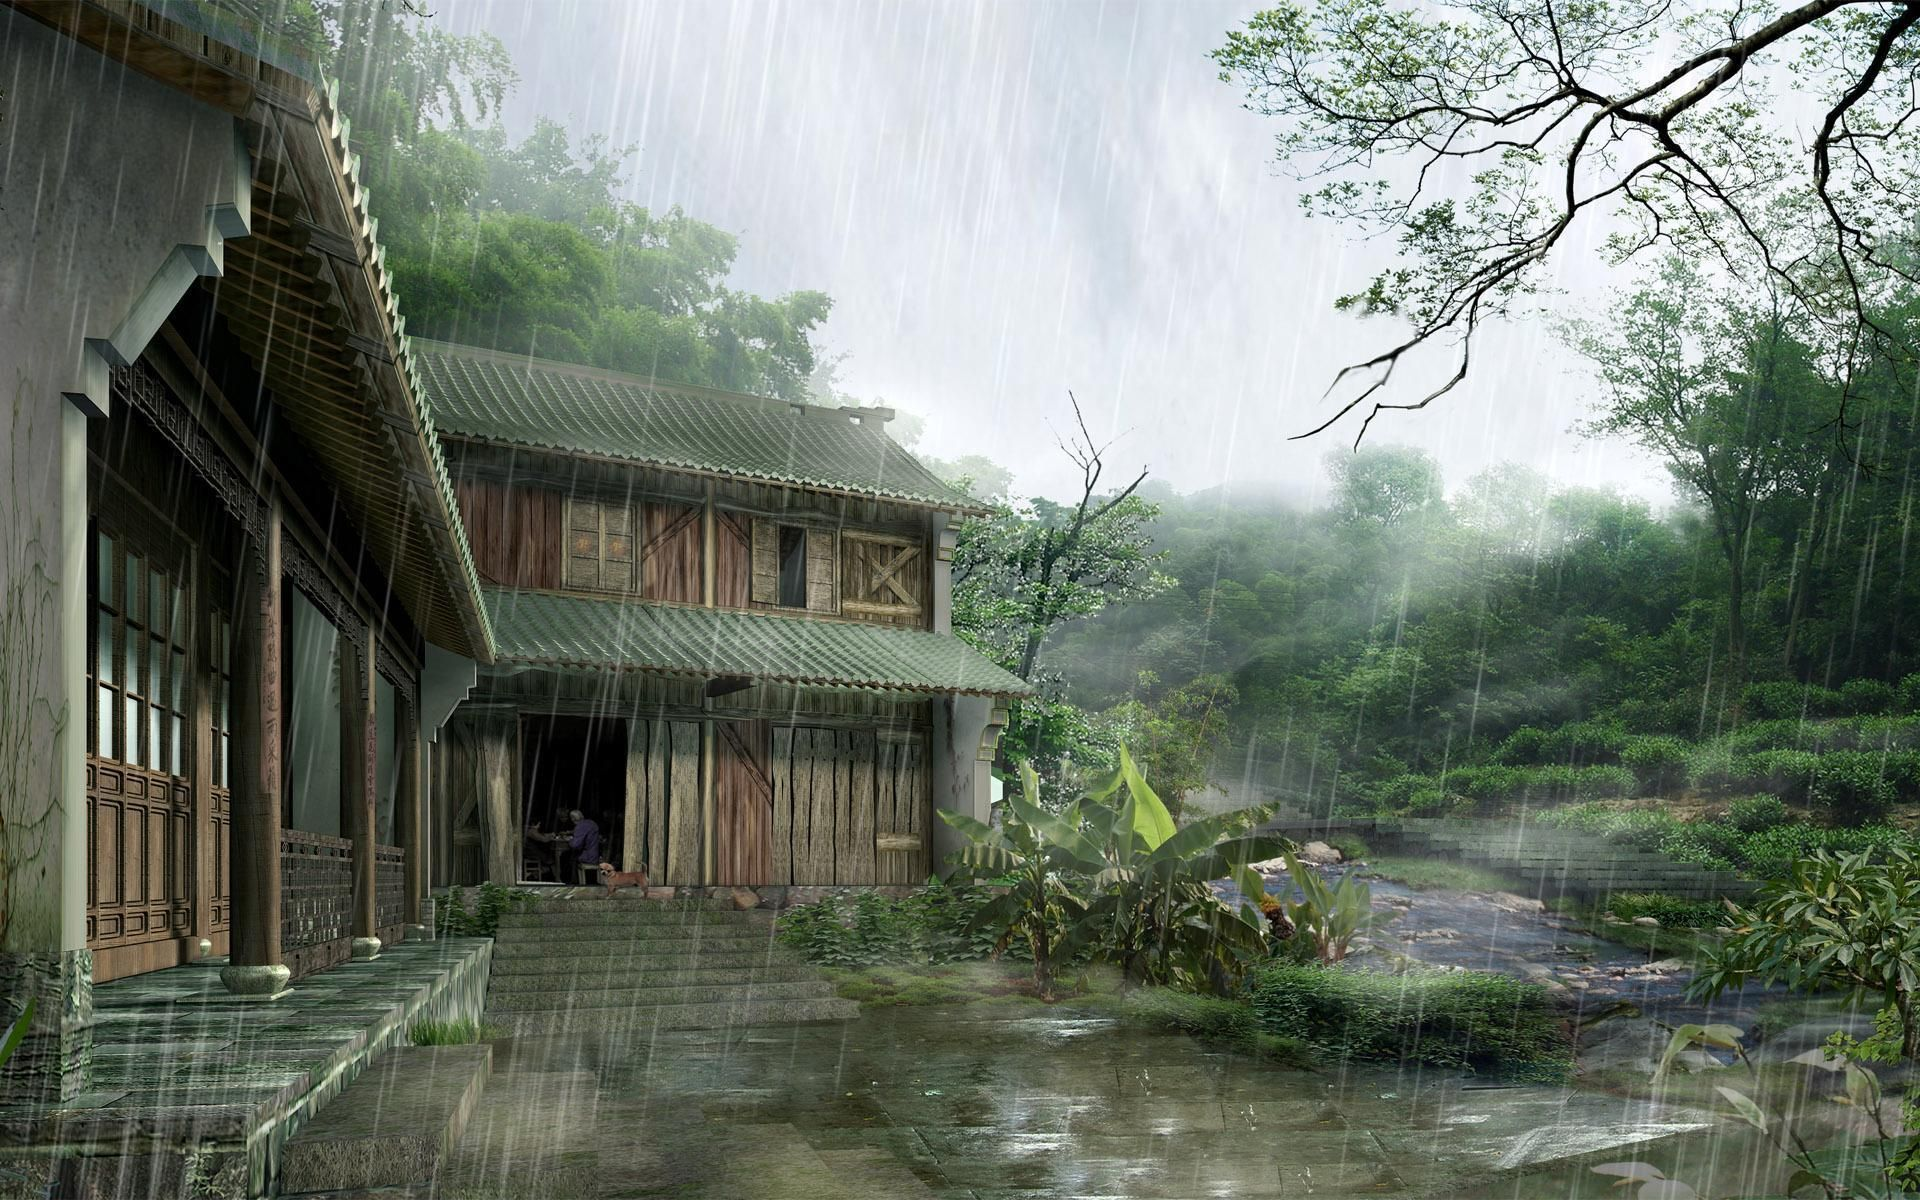 This Is A Picture Of Chinese Traditional House In Countryside I